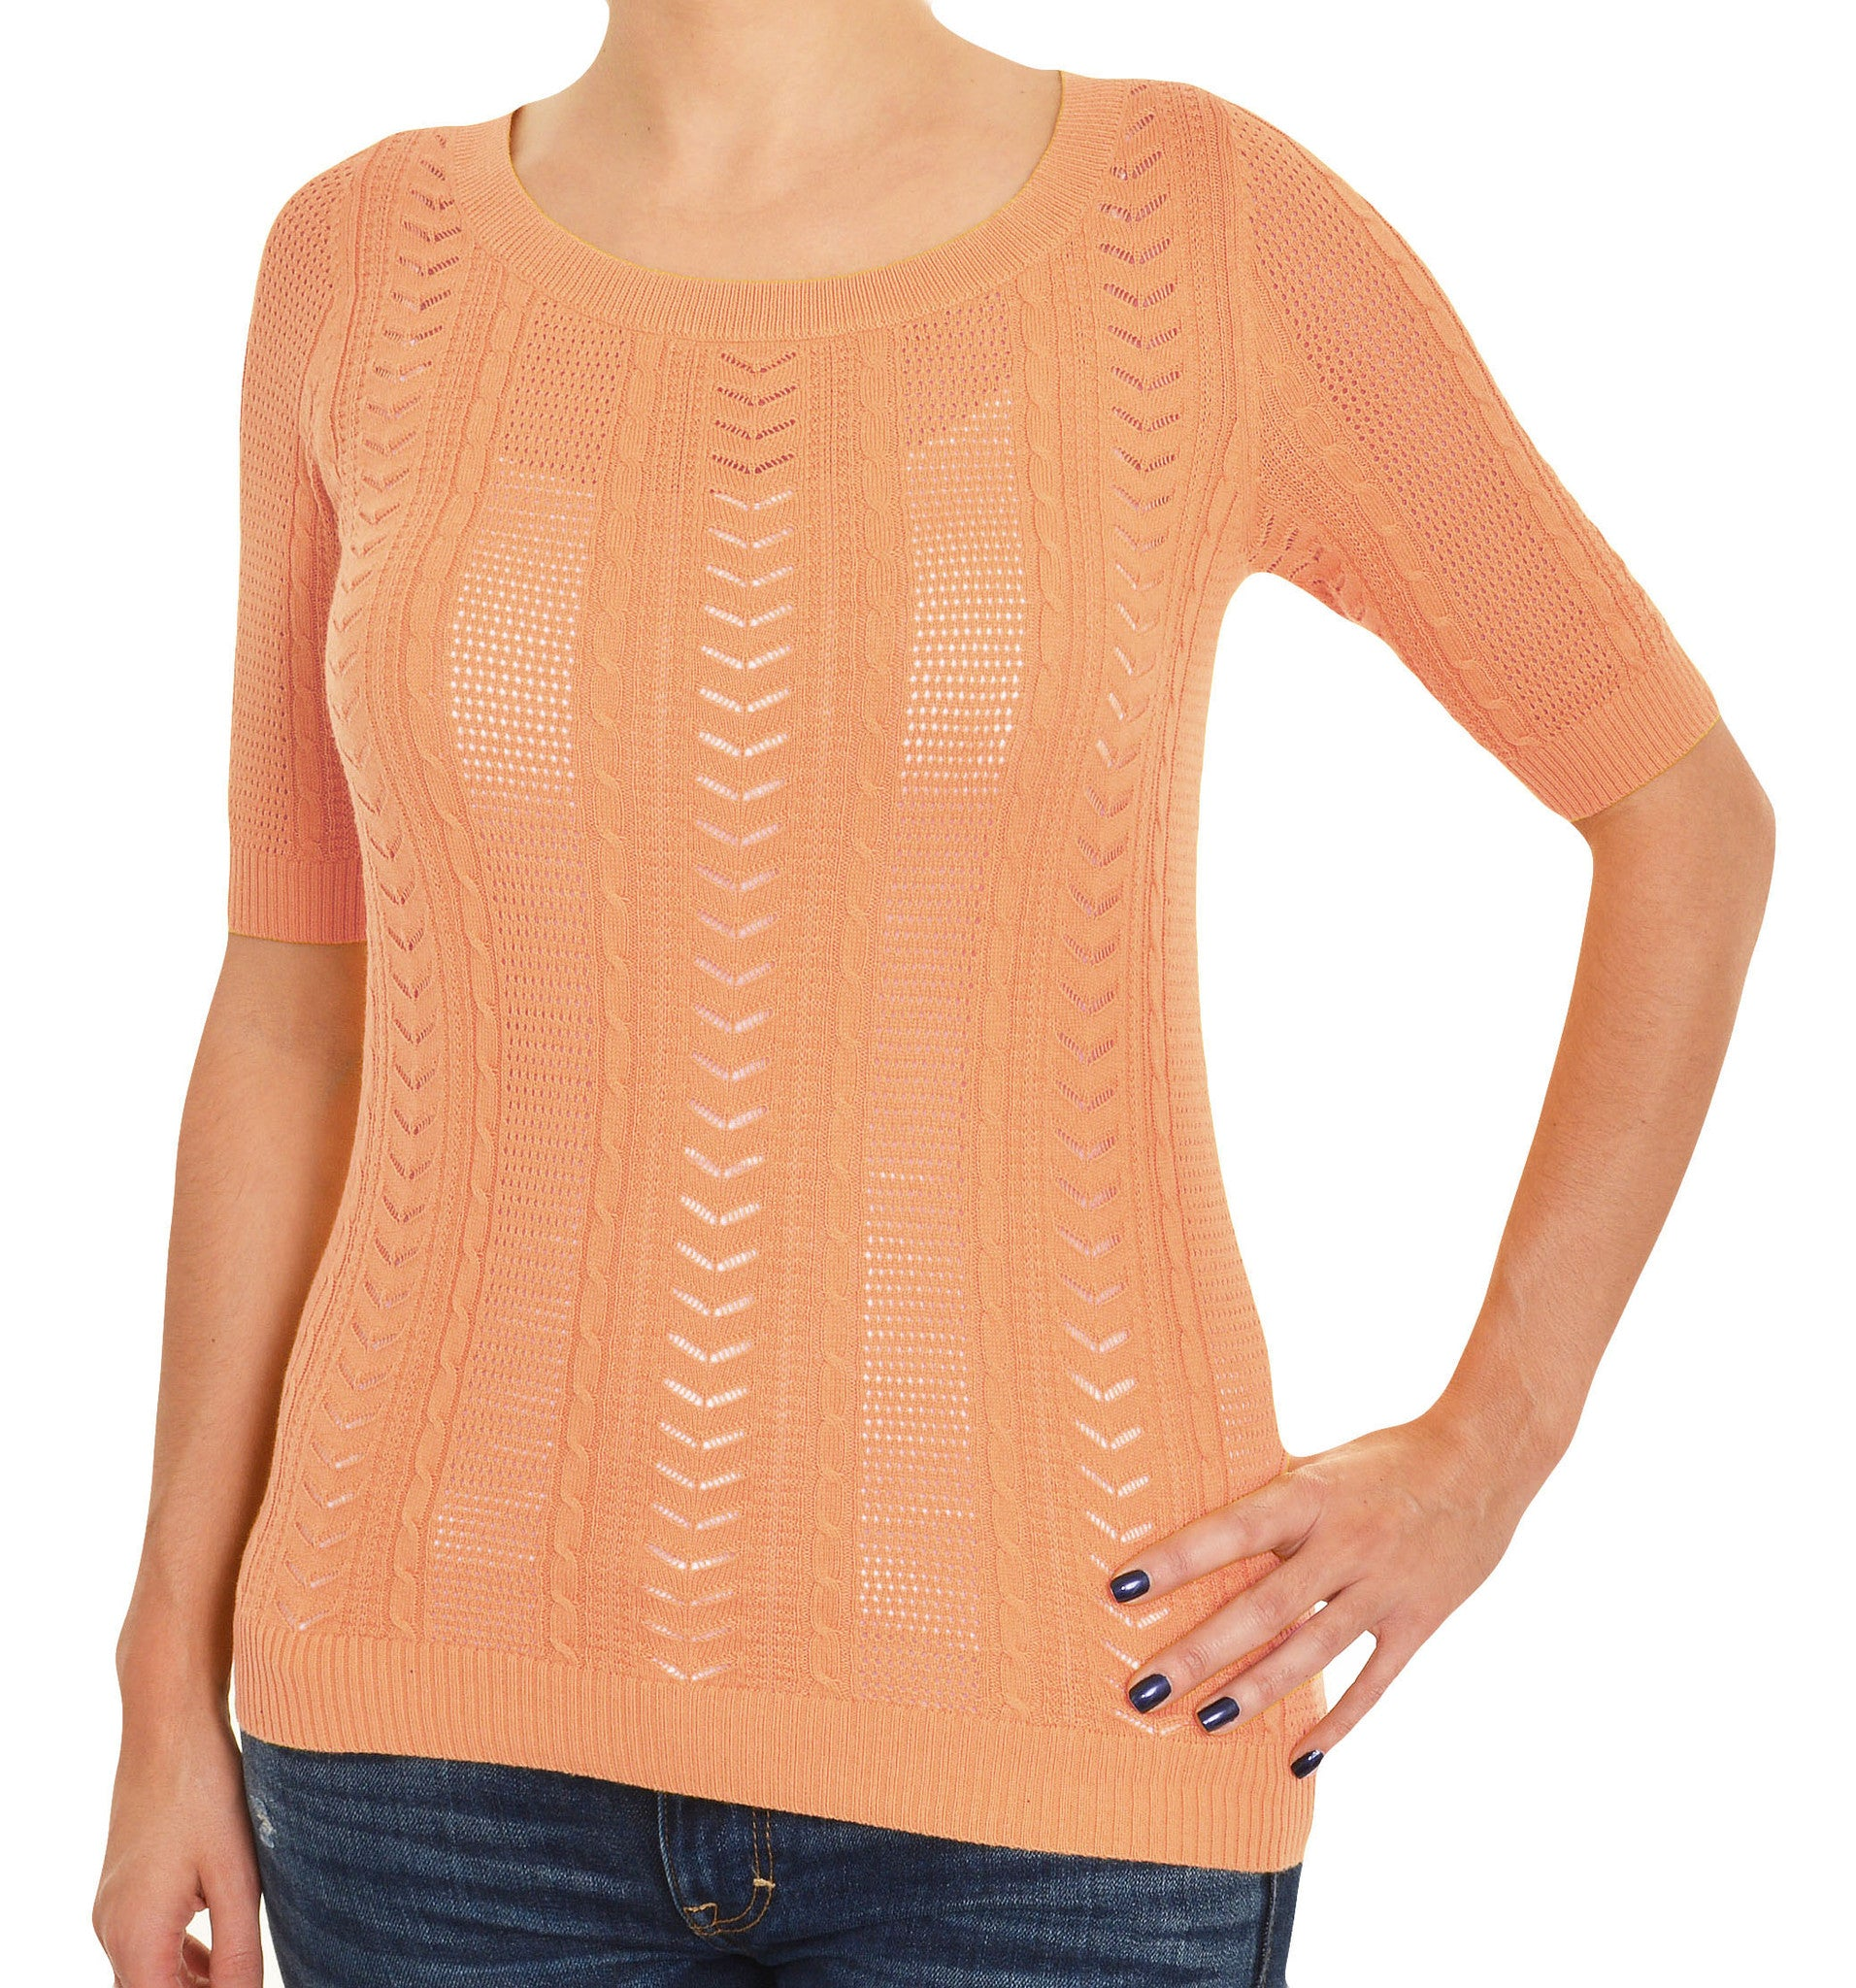 Ann Taylor Lace Knit Layering Shirt (Sherbet Orange),Shirts,Ann Taylor - Discount Divas